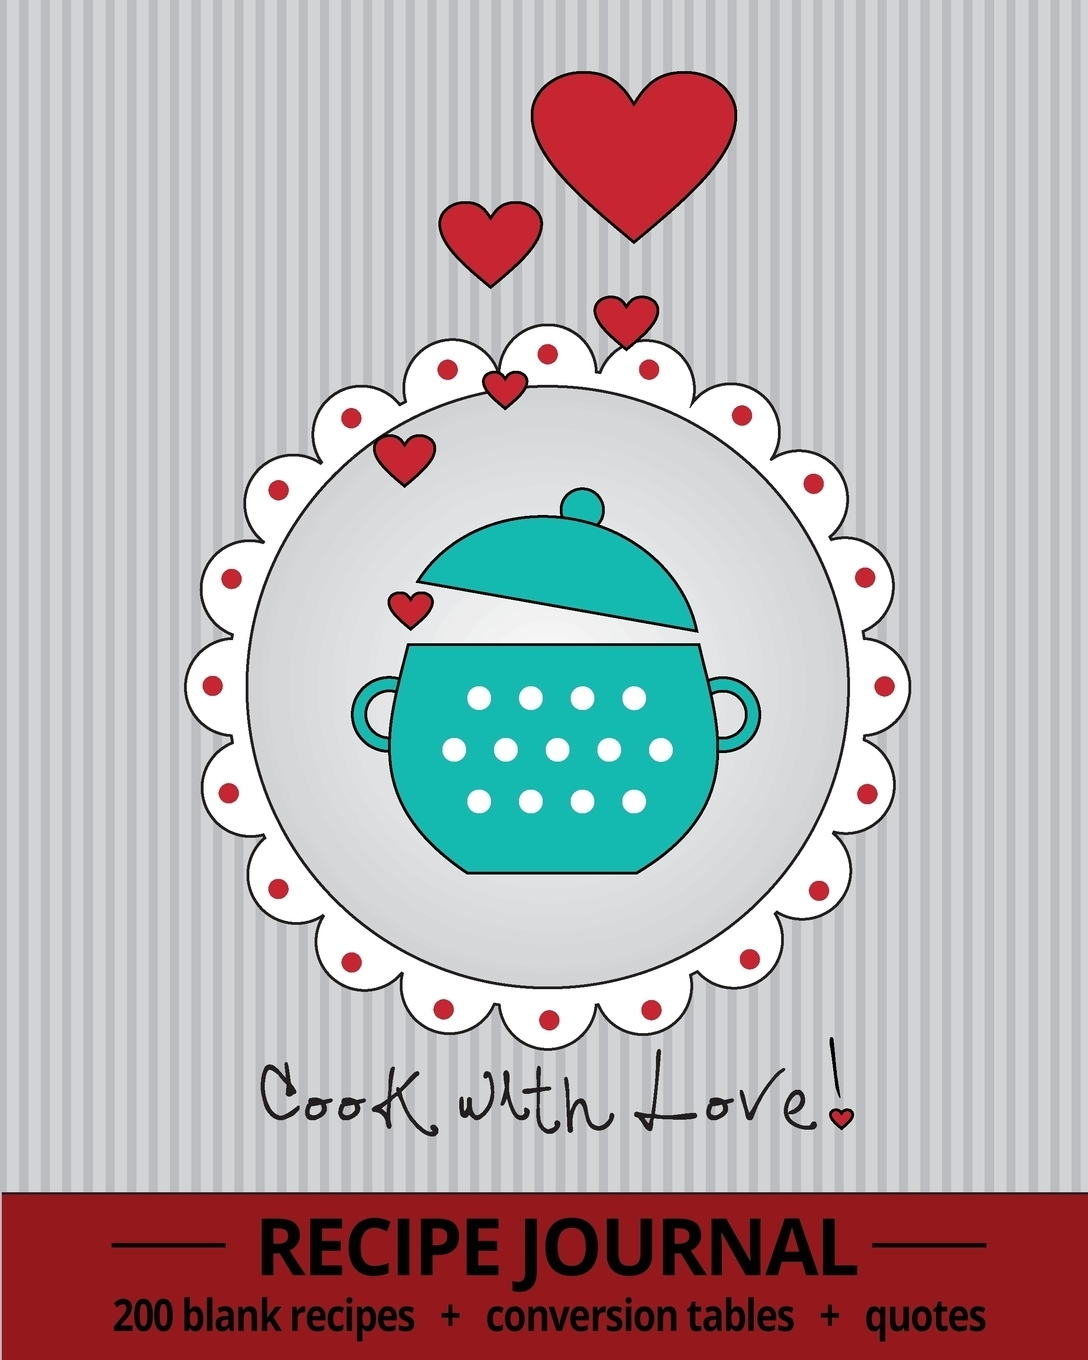 Cook With Love!. Recipe Journal With 200 Blank Recipe Pages, Conversion Tables, Quotes and Table of Recipes journal jungle publishing my recipe book 100 recipe pages conversion tables quotes and more make your own cookbook using this blank recipe book 8 x 10 inches pink purple and orange